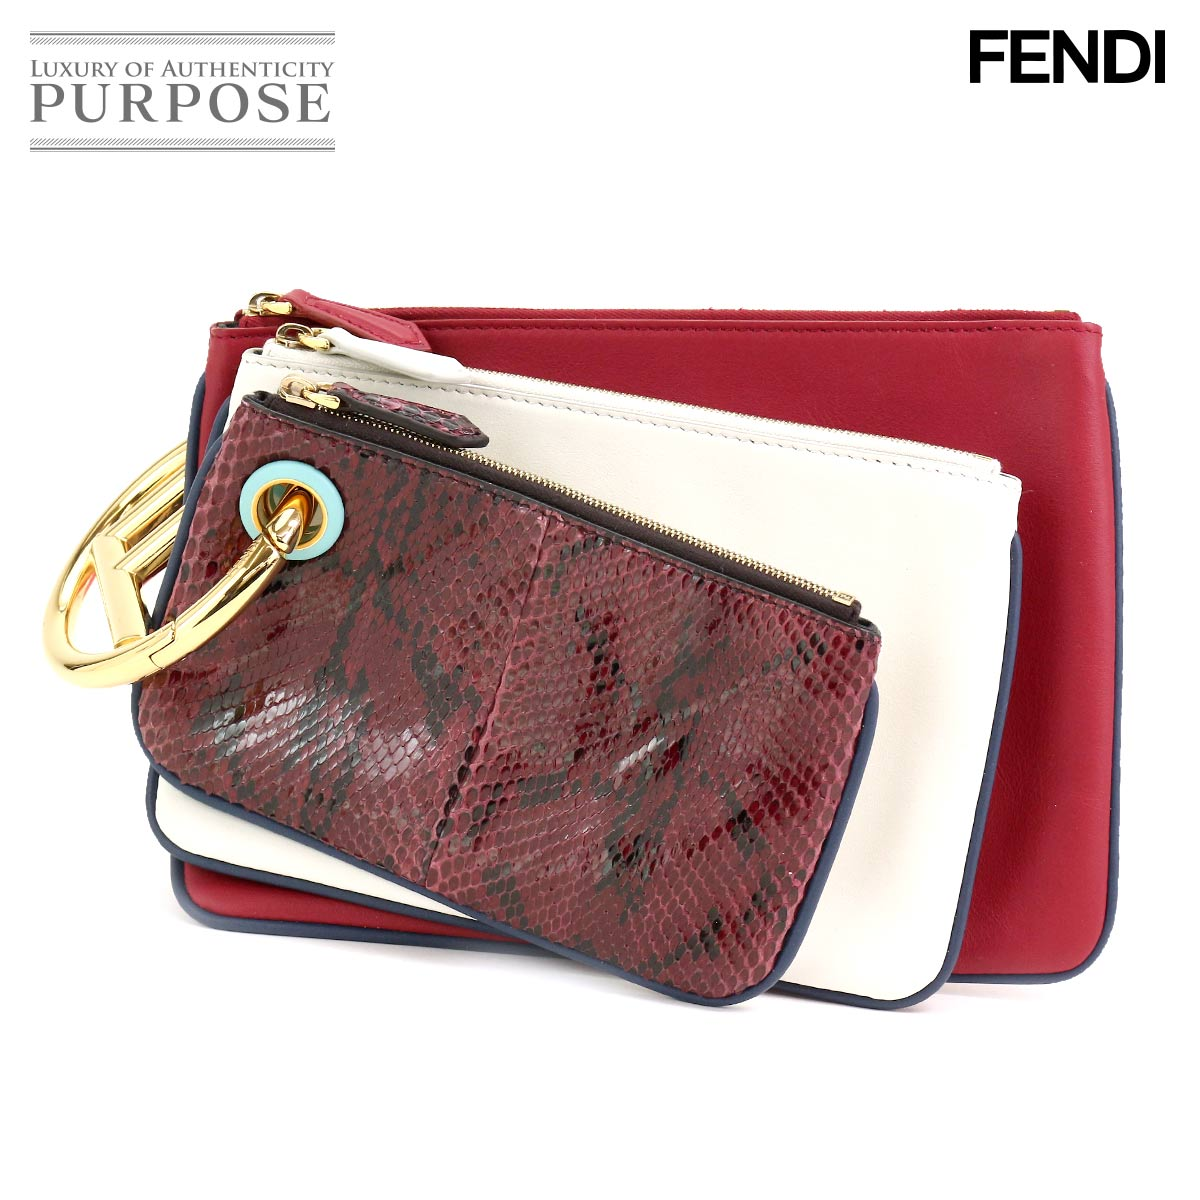 H10-3 Green Stunning Ladies Fashionable Clutch bag